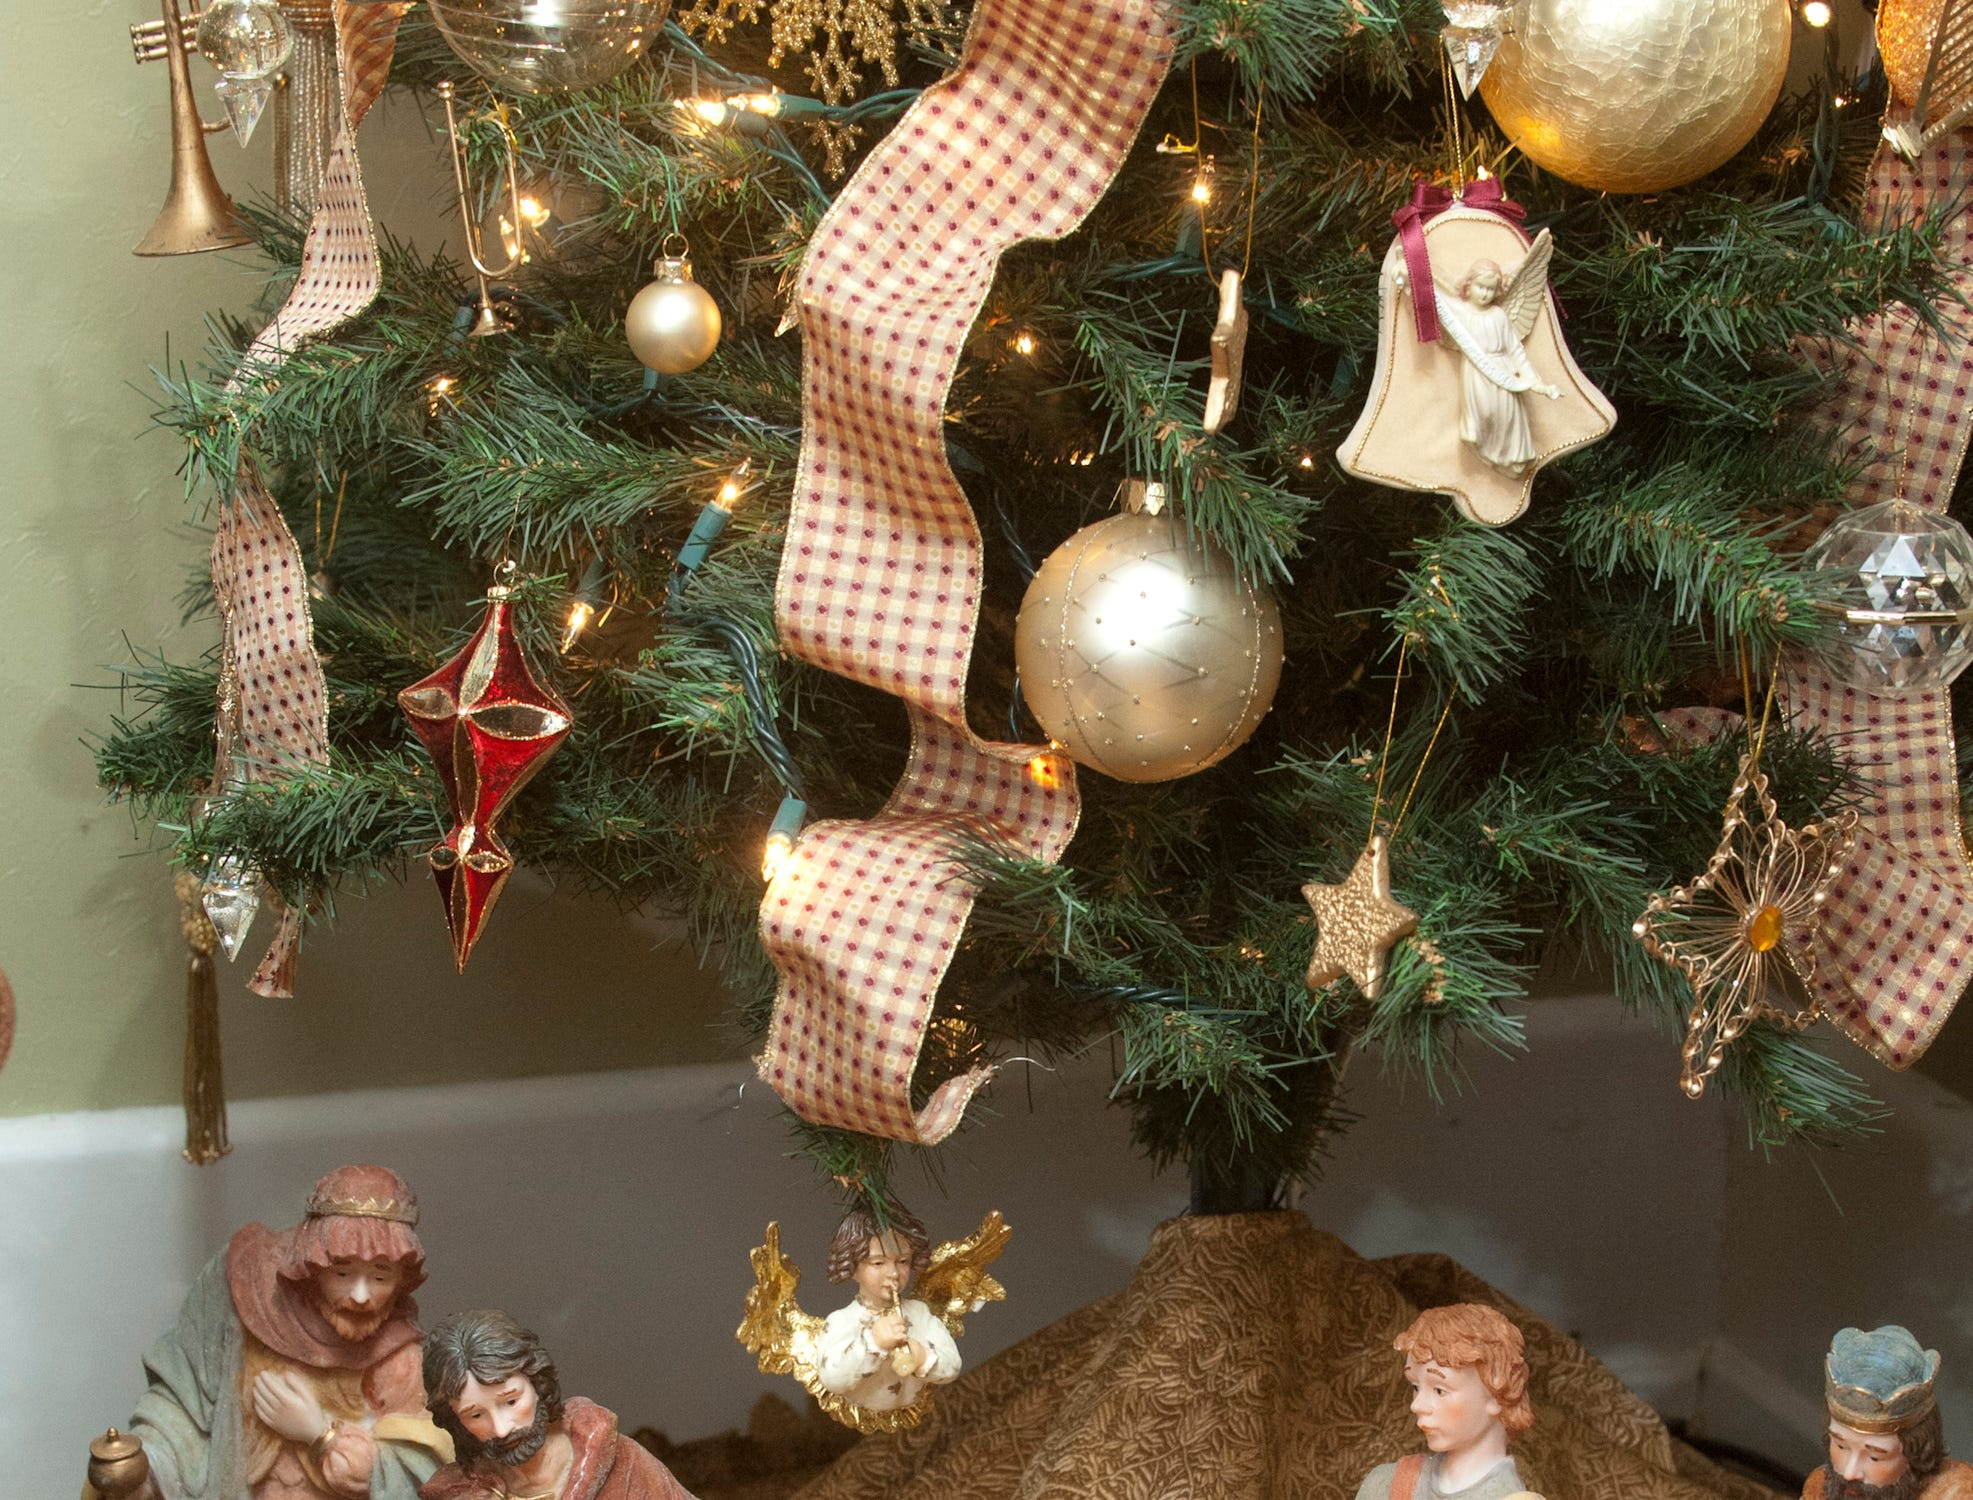 A nativity scene under the Christmas tree in the television room.10 December 2018